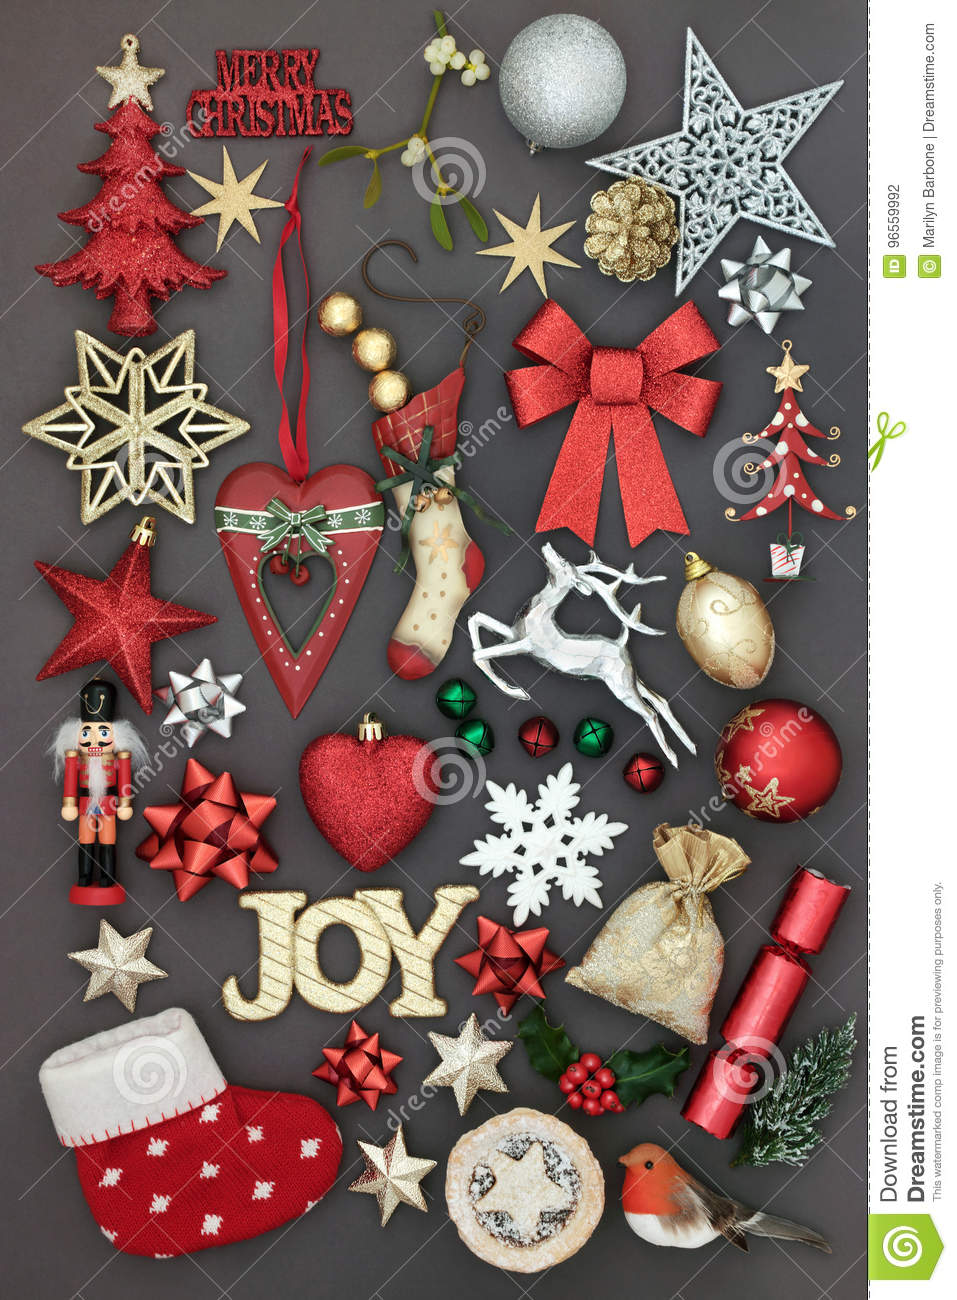 Joy at Christmas stock photo. Image of holly, heart, collection ...